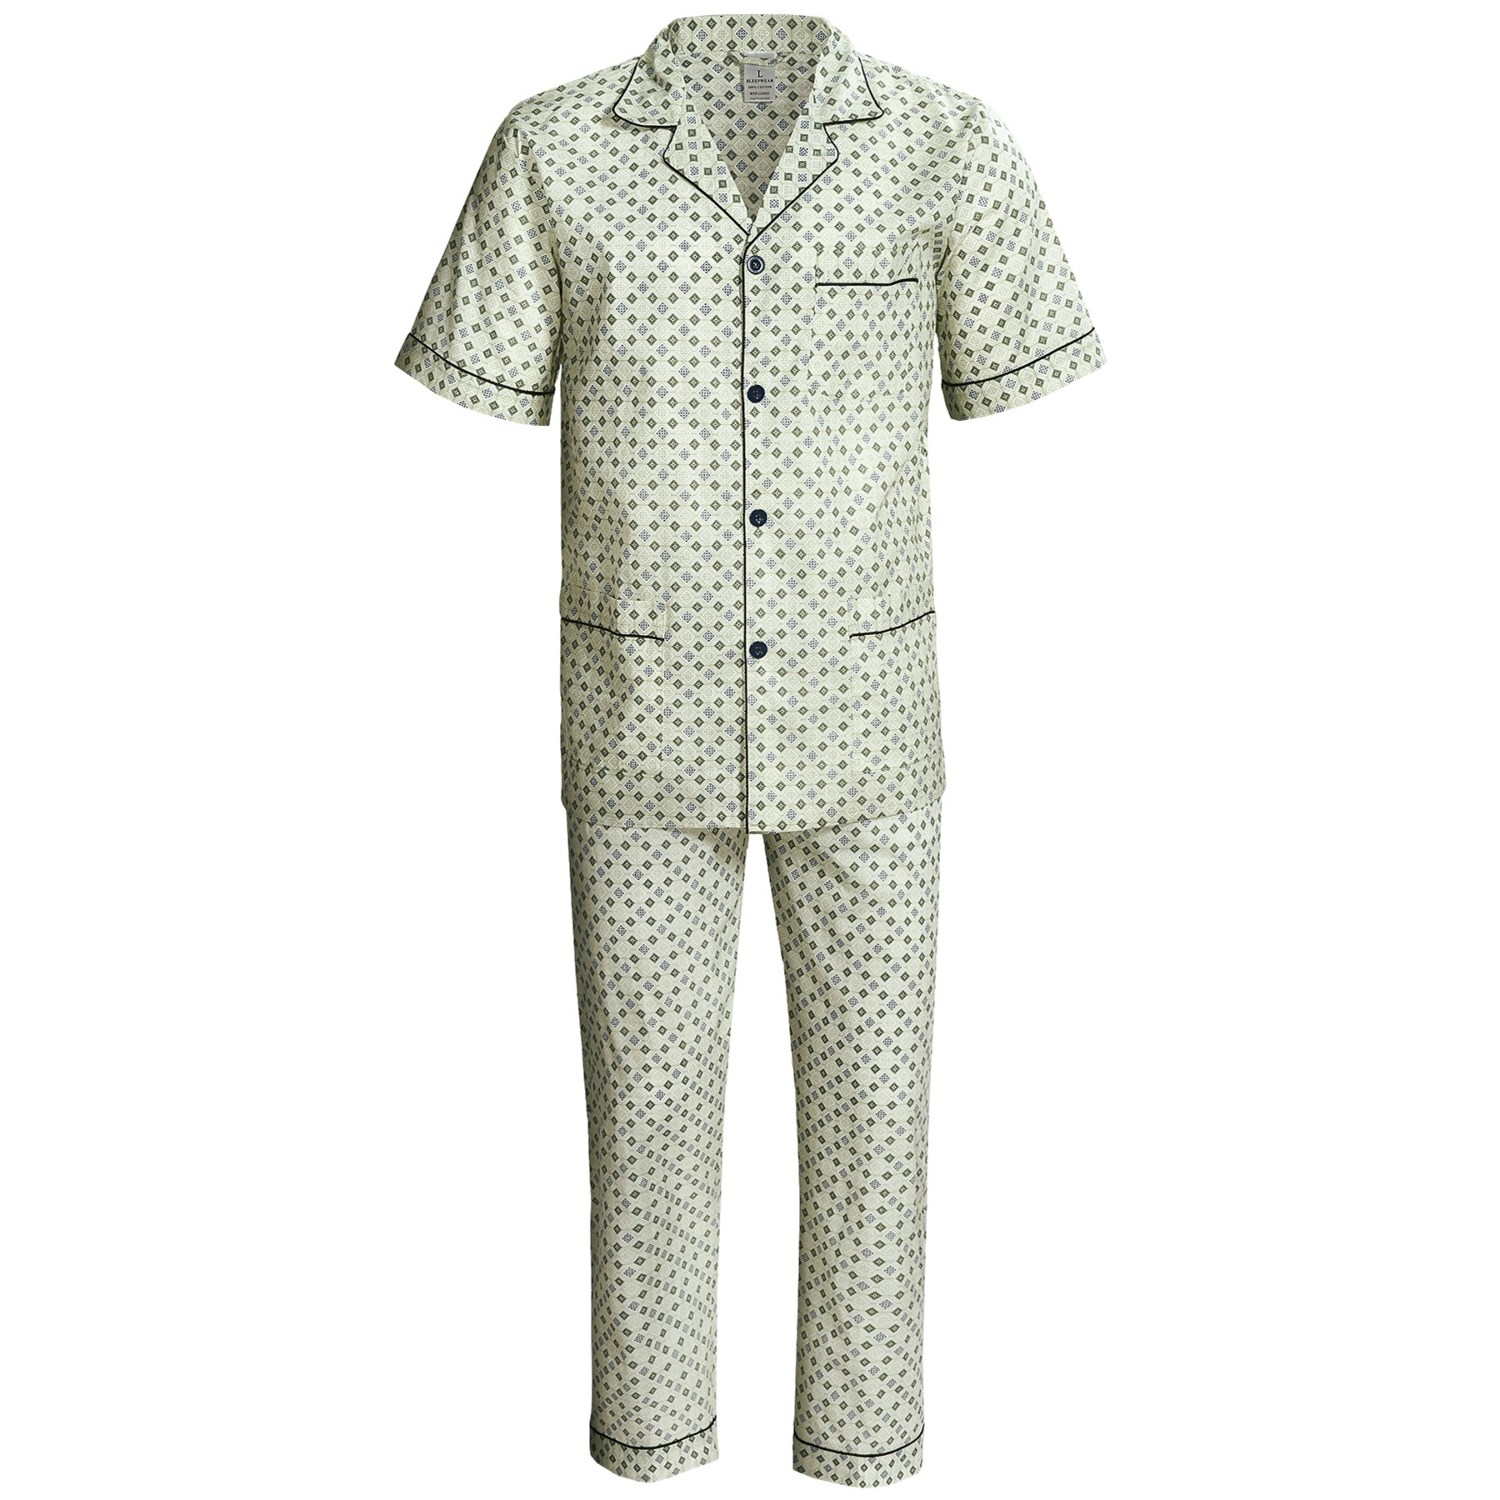 Two-piece sleep set, short sleeve and Short leg men pajama set. CYZ Men's % Cotton Plaid Woven Pajama Shorts Lounge Shorts Sleep Shorts. by CYZ Collection. $ - $ $ 4 $ 15 99 Prime. FREE Shipping on eligible orders. Some sizes/colors are Prime eligible. out of 5 stars